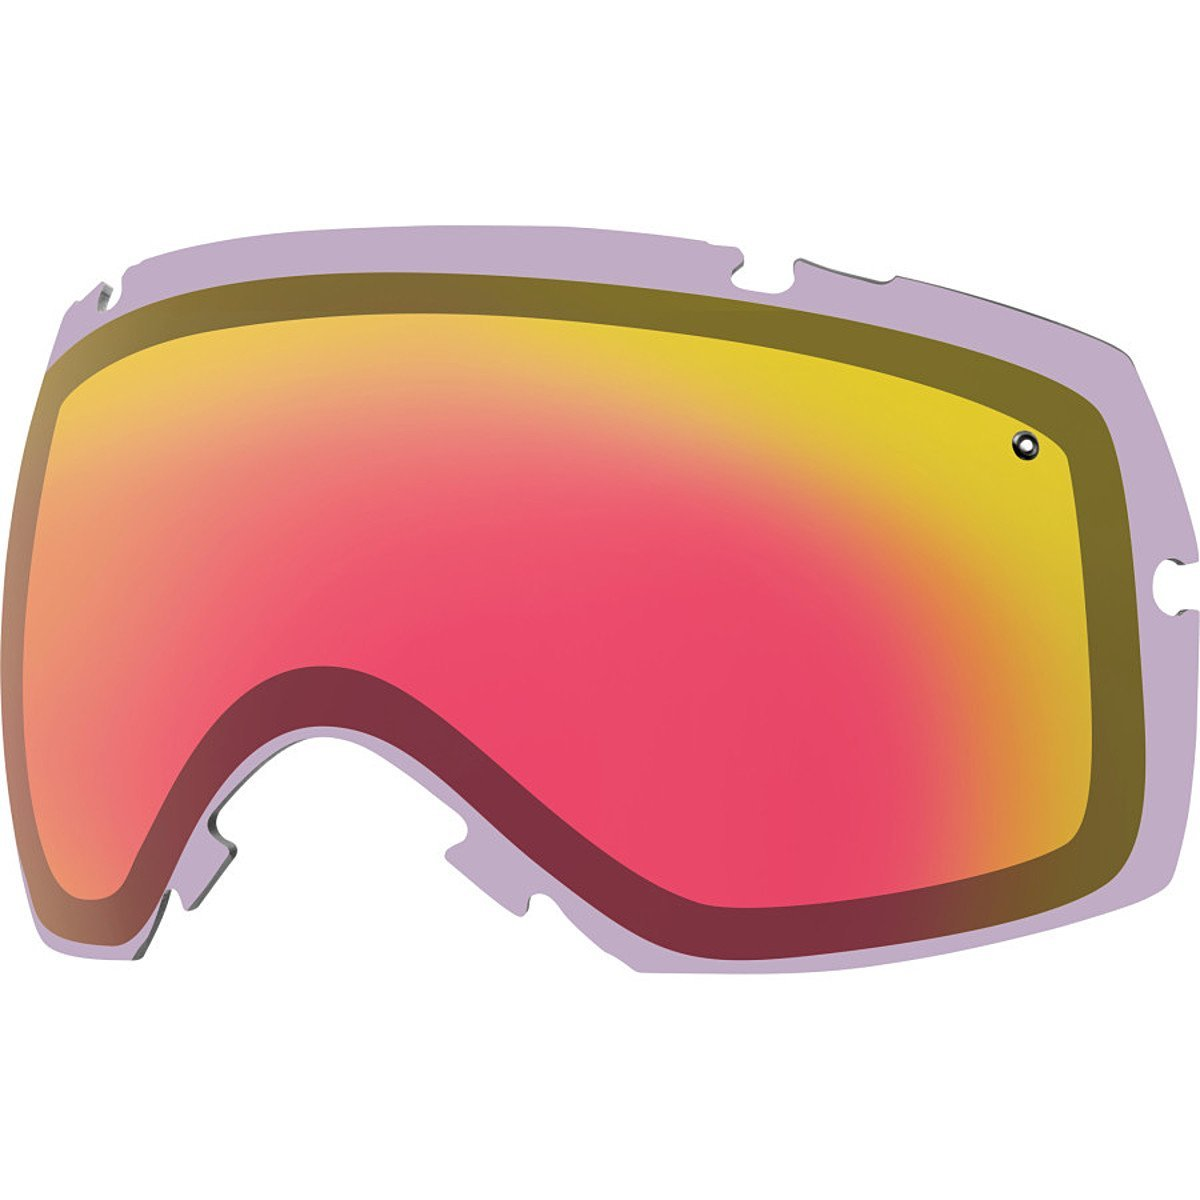 73ec65945712 Buy Smith Optics I OX Replacement Lens RC36 in Cheap Price on ...